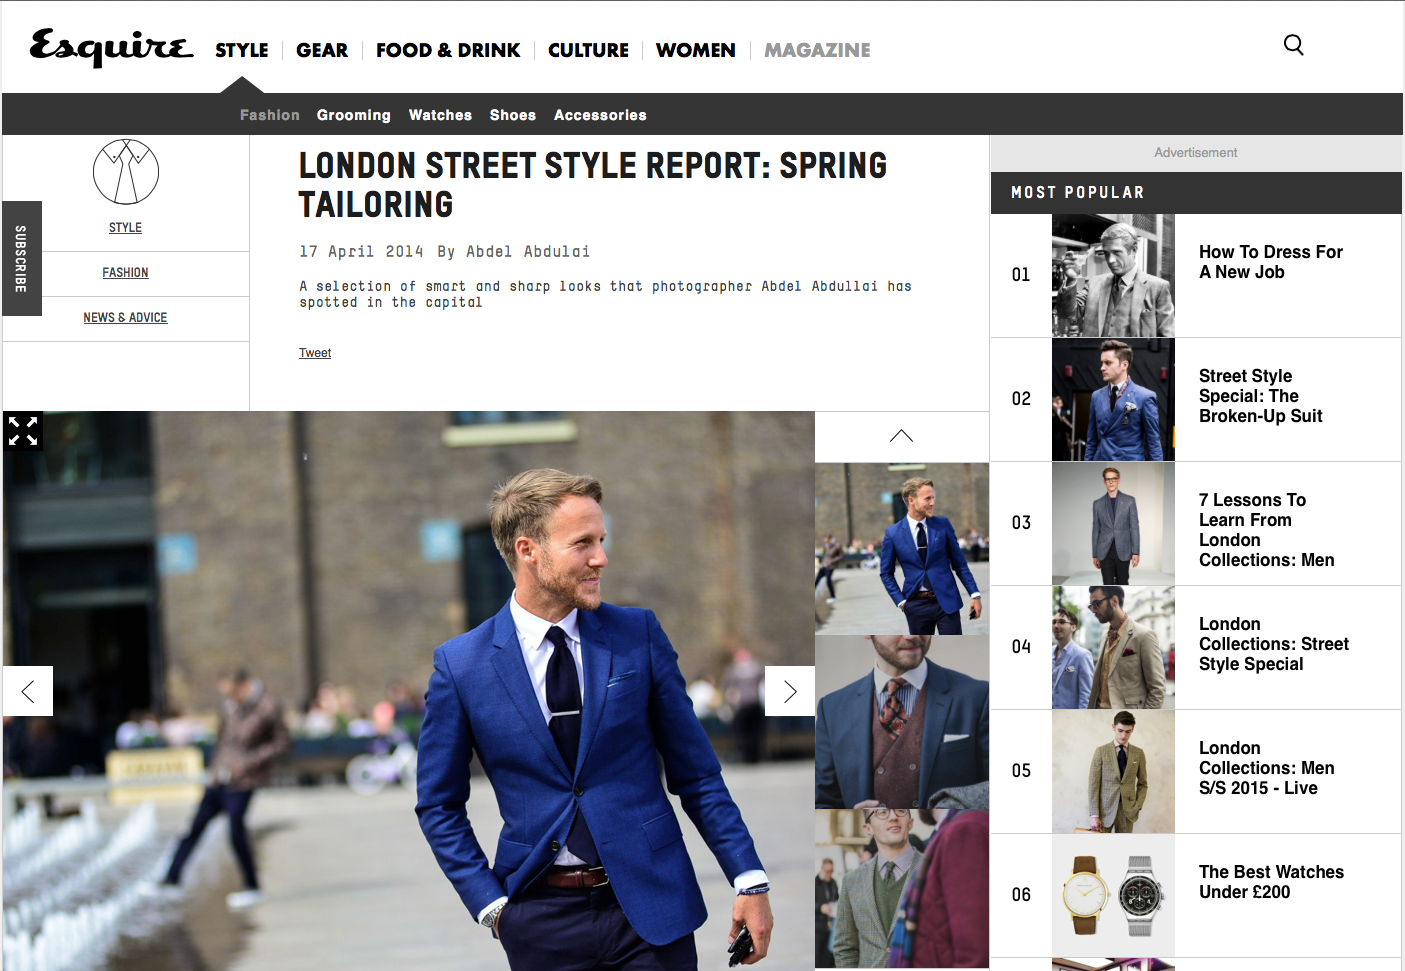 London Street Style Report: Spring Tailoring